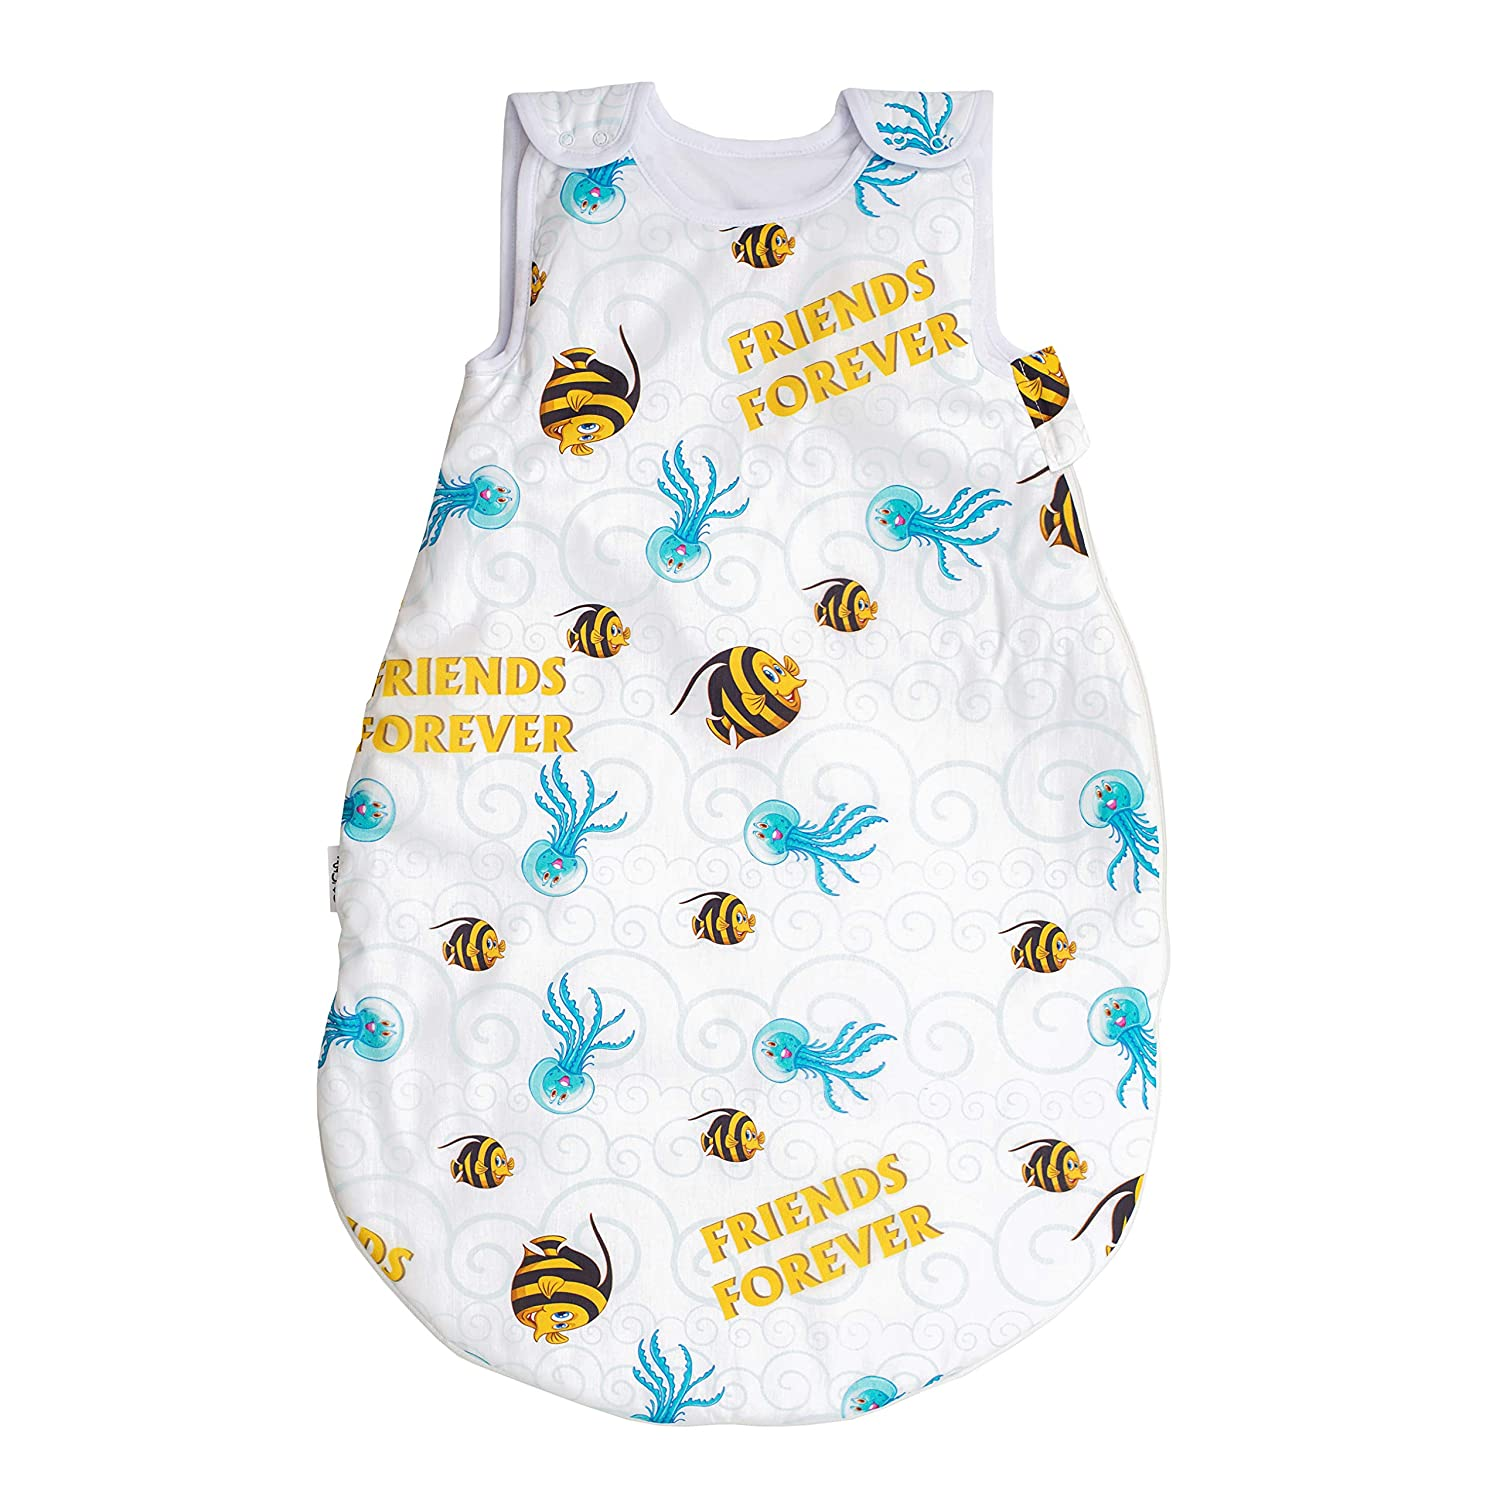 2.5 to 4 tog Pati/'Chou baby sleeping bag for autumn winter 6 12 24 36 months